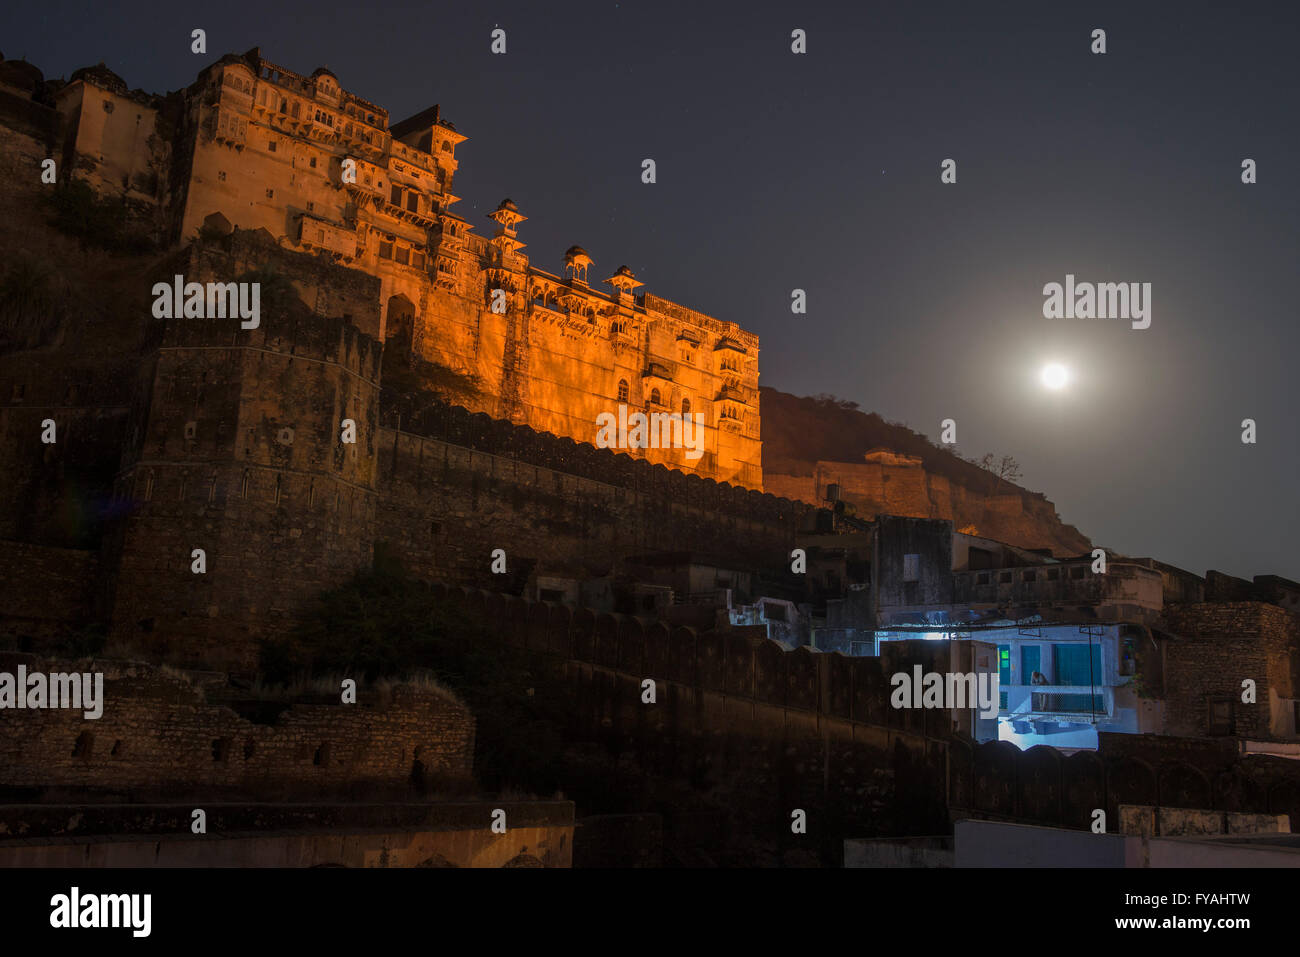 India Full Moon Stock Photos & India Full Moon Stock Images - Alamy